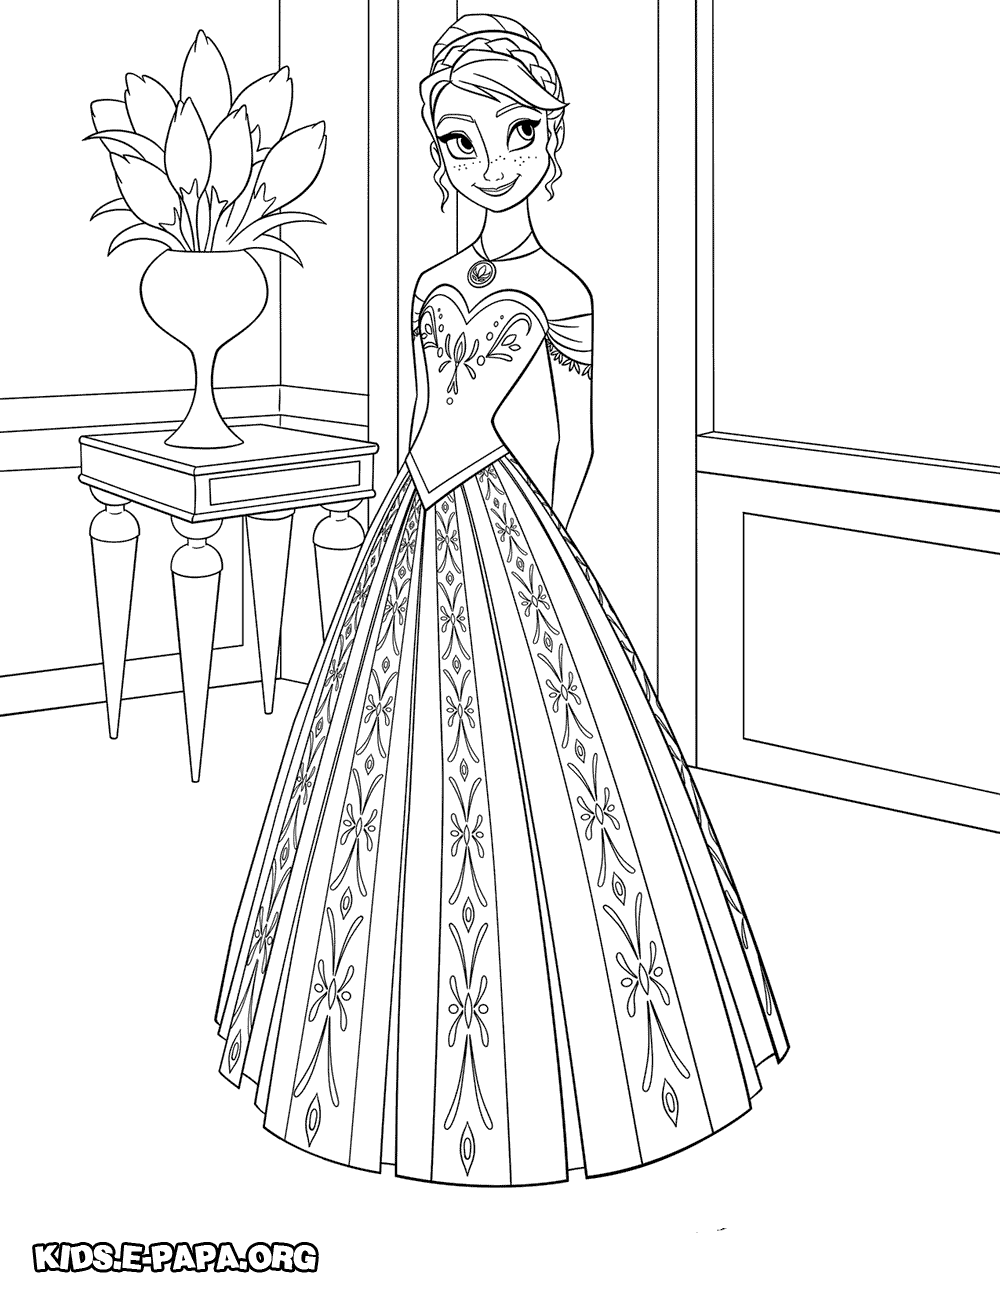 barbie princess coloring 3 together with  further  further v ire pixie halloween paper doll bw also 477238 additionally rapunzel 20paper 20toy besides tranh to mau hoat hinh barbie co gai de thuong 93 further  moreover 2d1869f8f634cf235dfe9dcab1b02c8b besides 9004533254 besides powerpuff girls002. on printable coloring pages disney princess paper dolls